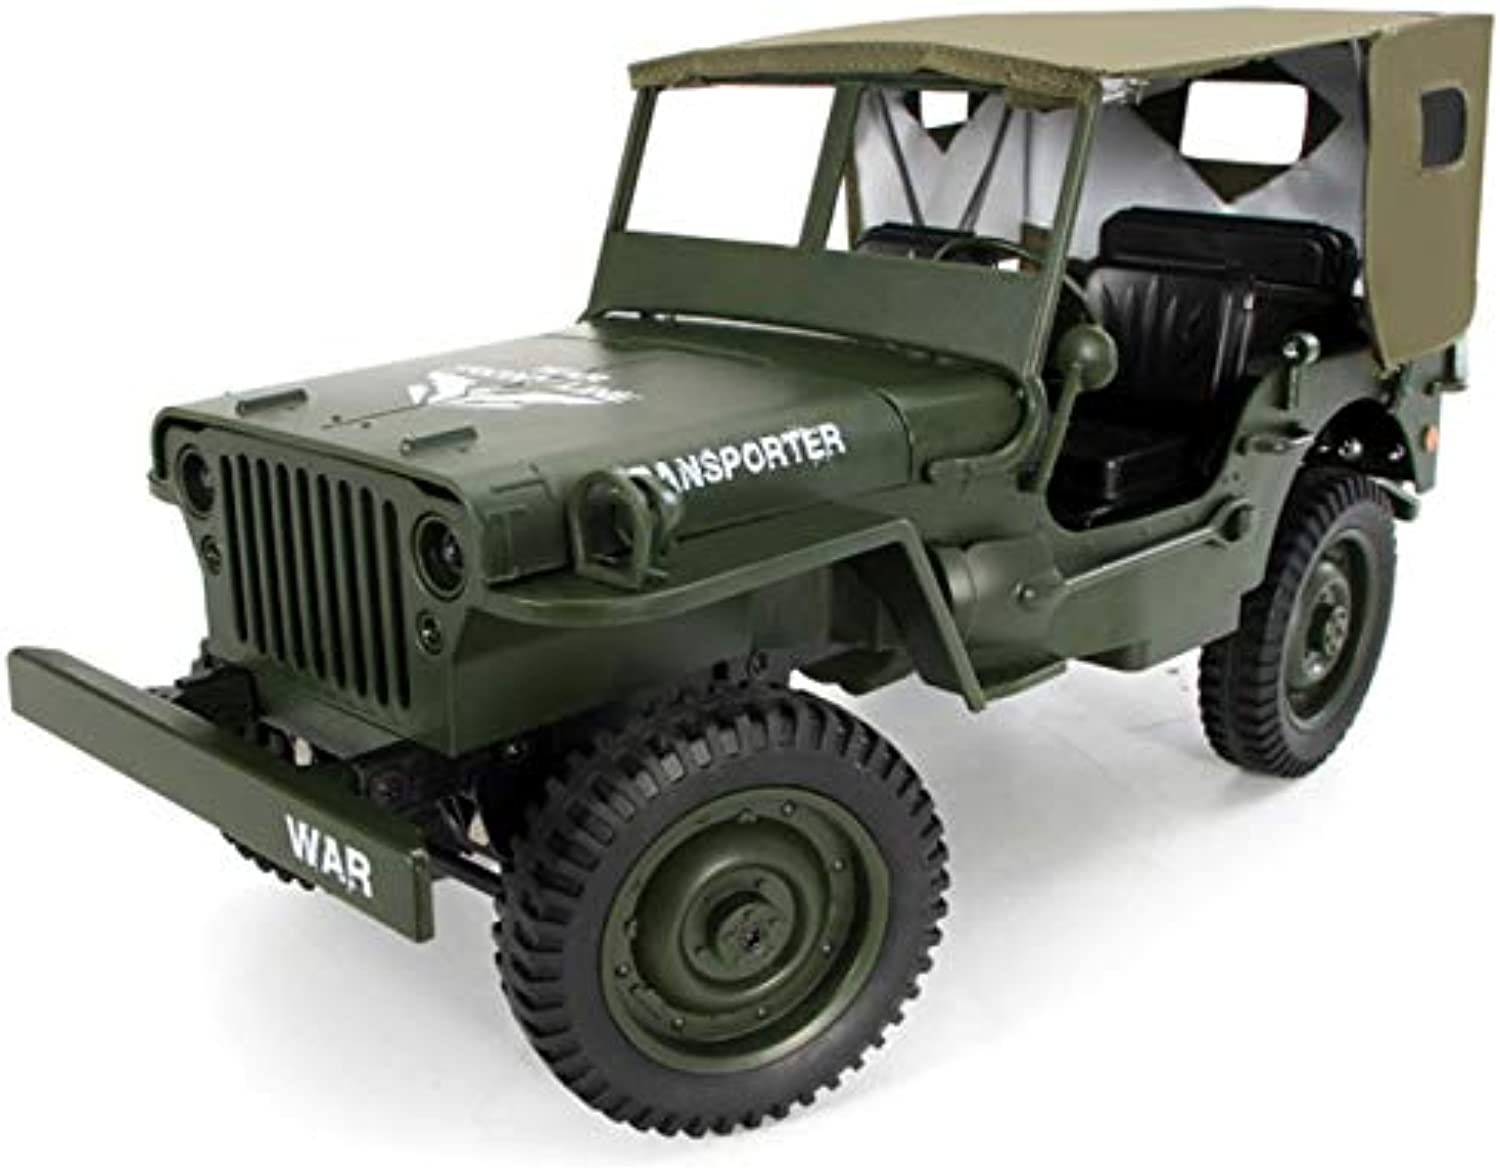 Kanmeipp Remote Control Car Remote Control Tracked Military with Ceiling Led Light Toy B